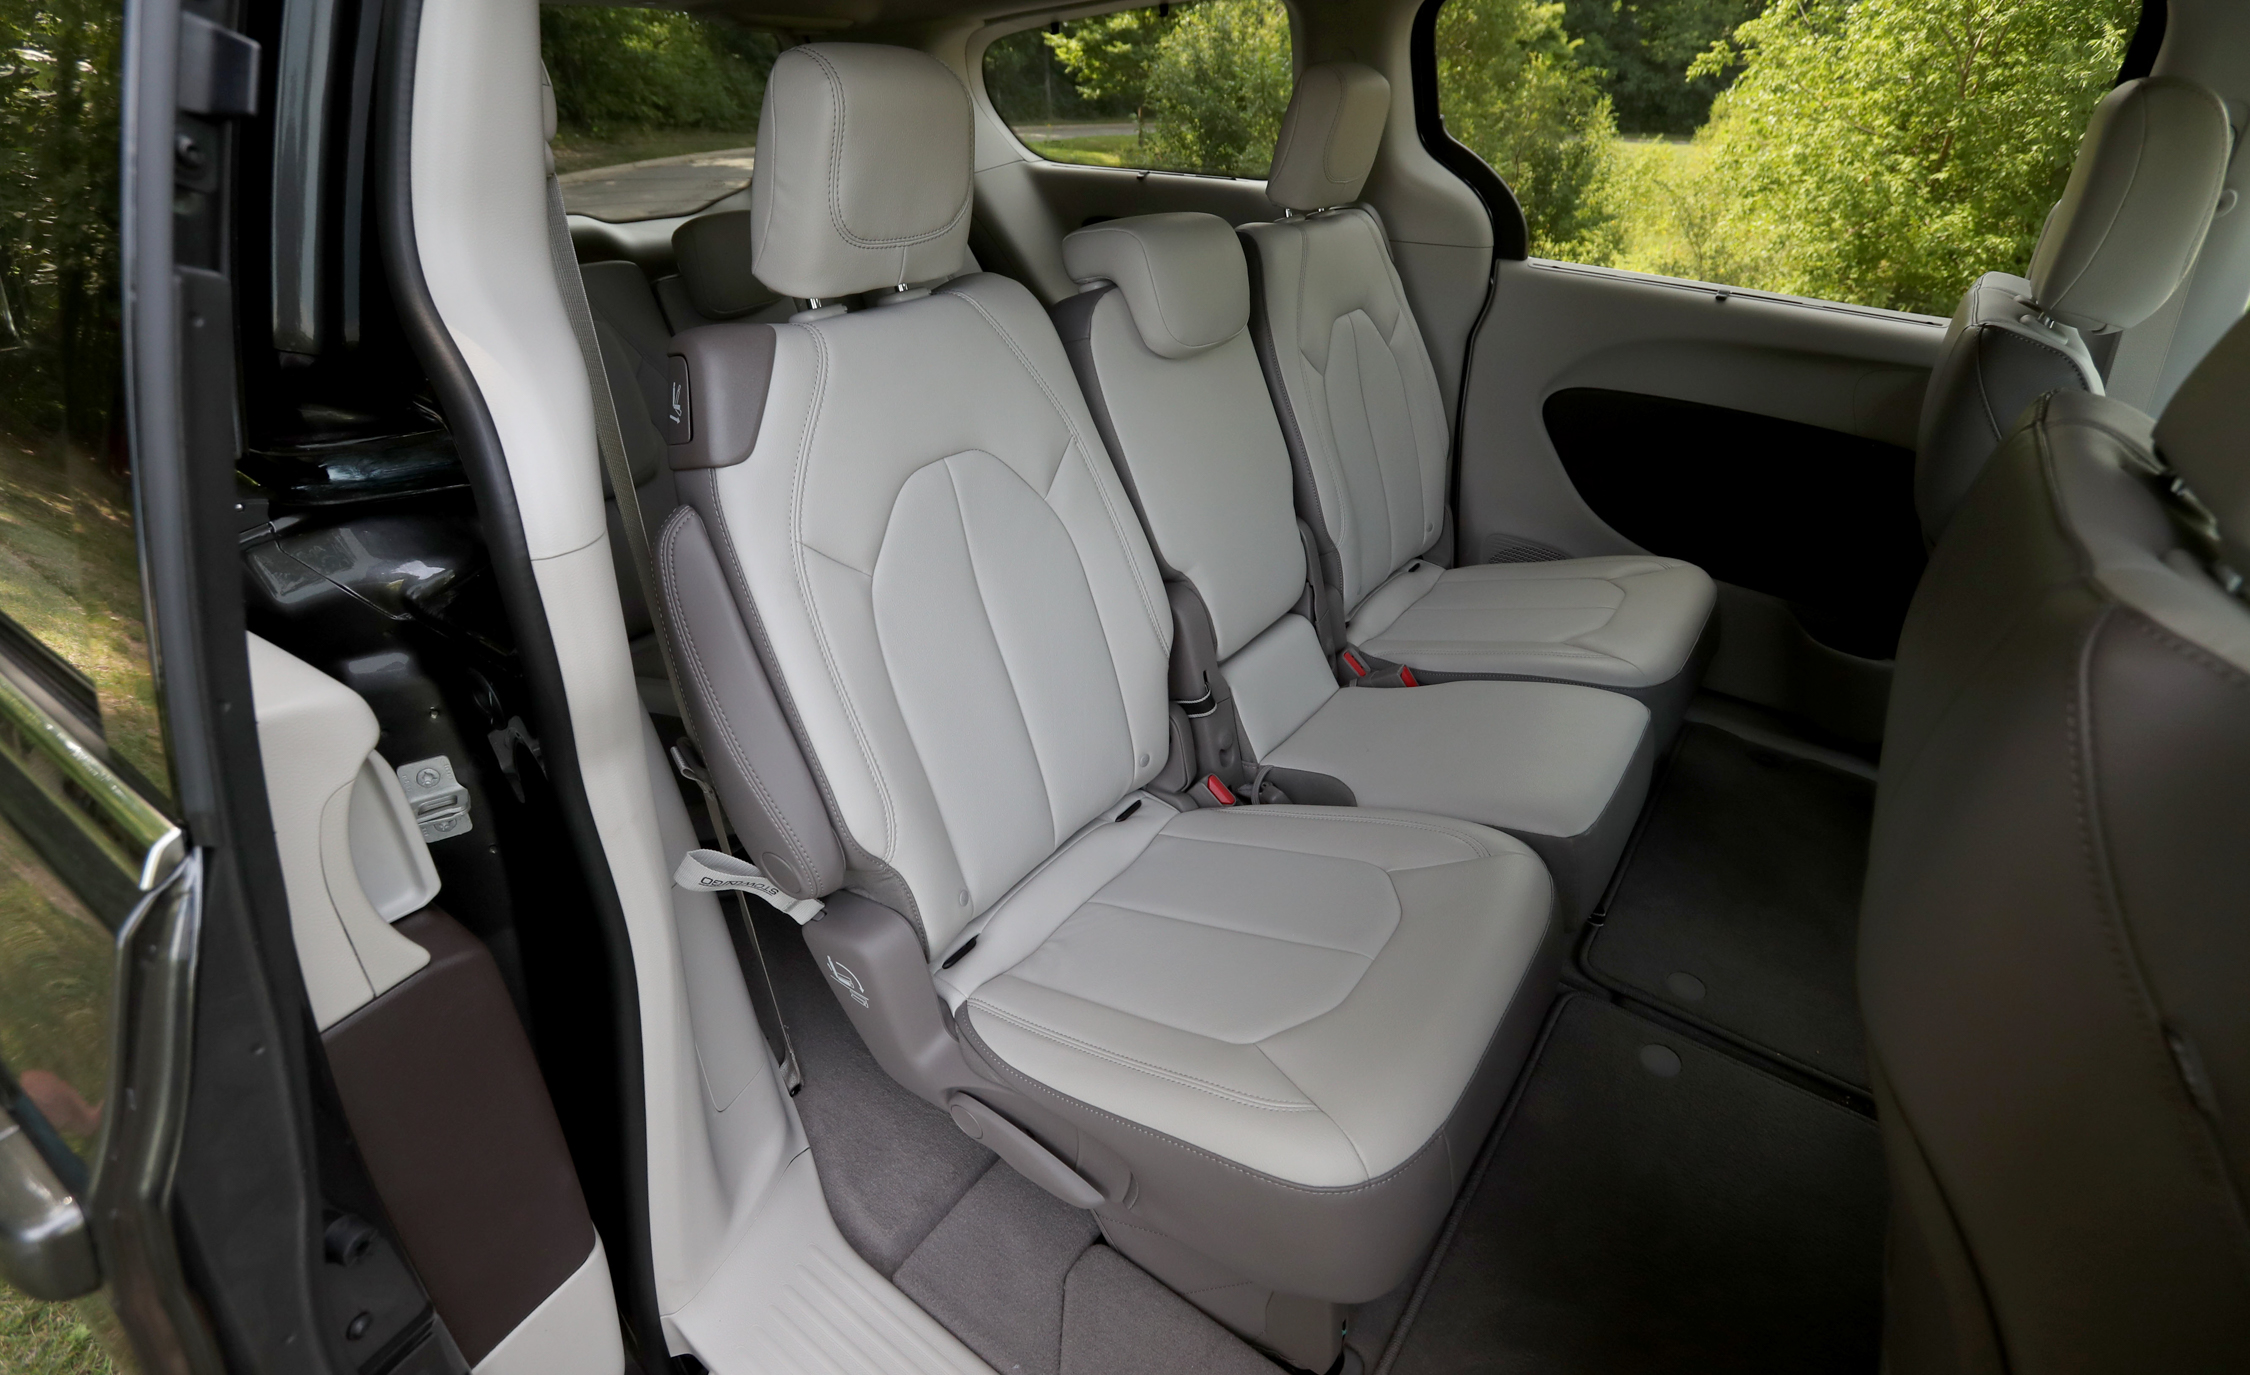 2017 Chrysler Pacifica Touring L Interior Seats 2nd Row (View 12 of 25)